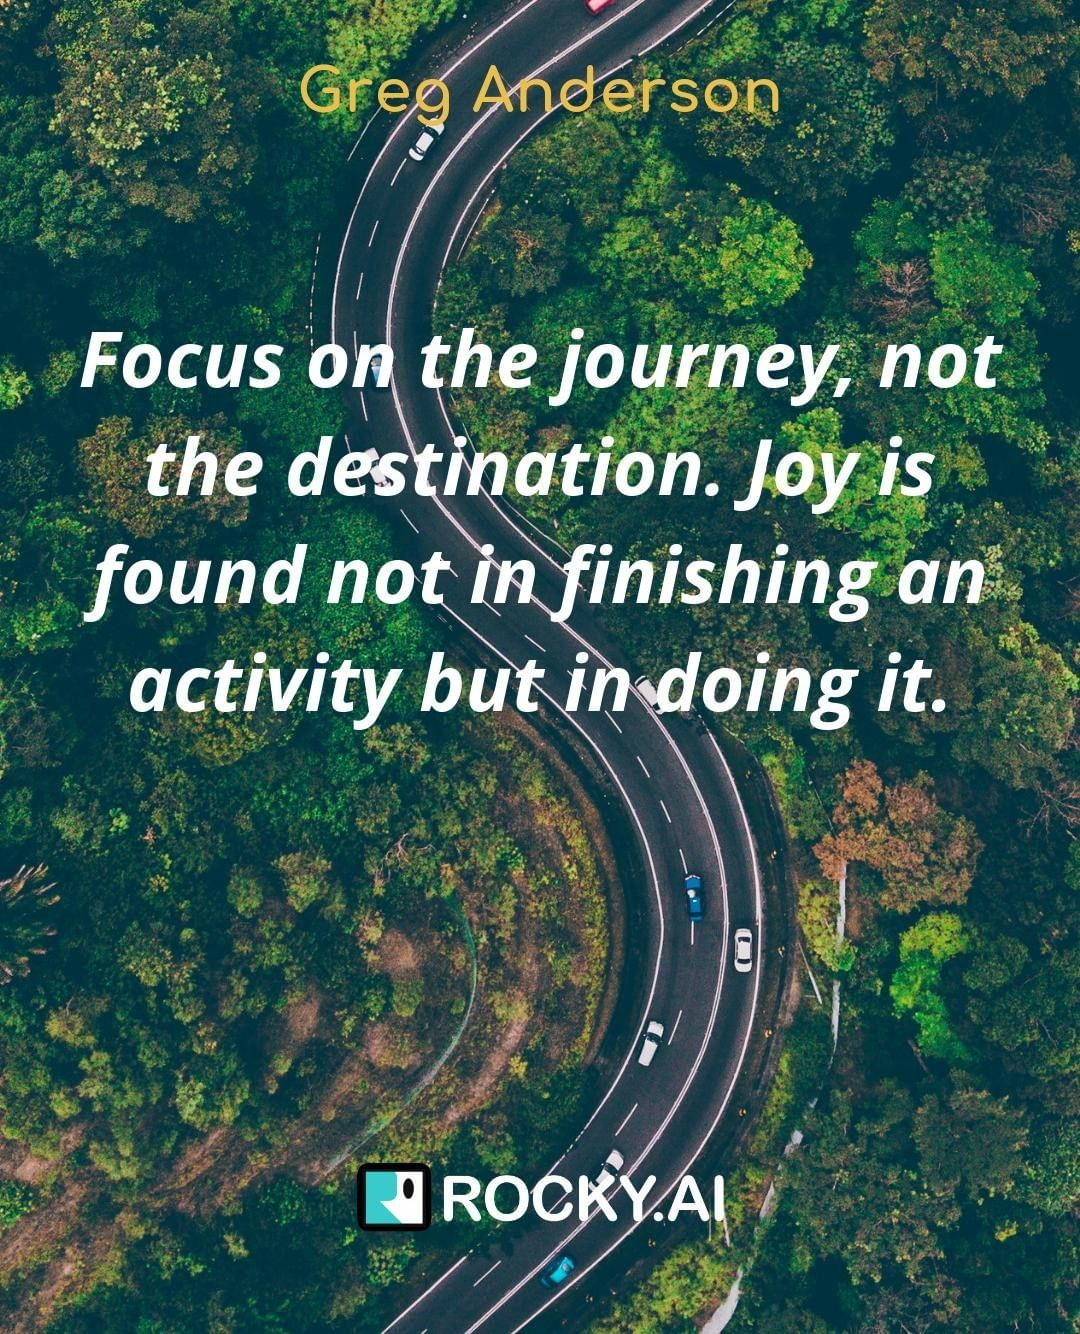 "What is your focus of today? ""Focus on the journey, not the destination. Joy is found not in finishing an activity but in doing it."" #focus #leadership #entrepreneur #business #success #inspiration #work #entrepreneurlife #entrepreneurship #businessowner #entrepreneurquotes #entrepreneurlifestyle #mindset #startuplife #goals #quoteoftheday #tech #startups #grind #leadershipdevelopment #personalgrowth #leadershipcoach #mindsetiseverything #conciousculture #alwayslearning #selfdevelopment #leadbyexample #businesscoach #femaleentrepreneur #lifecoach"